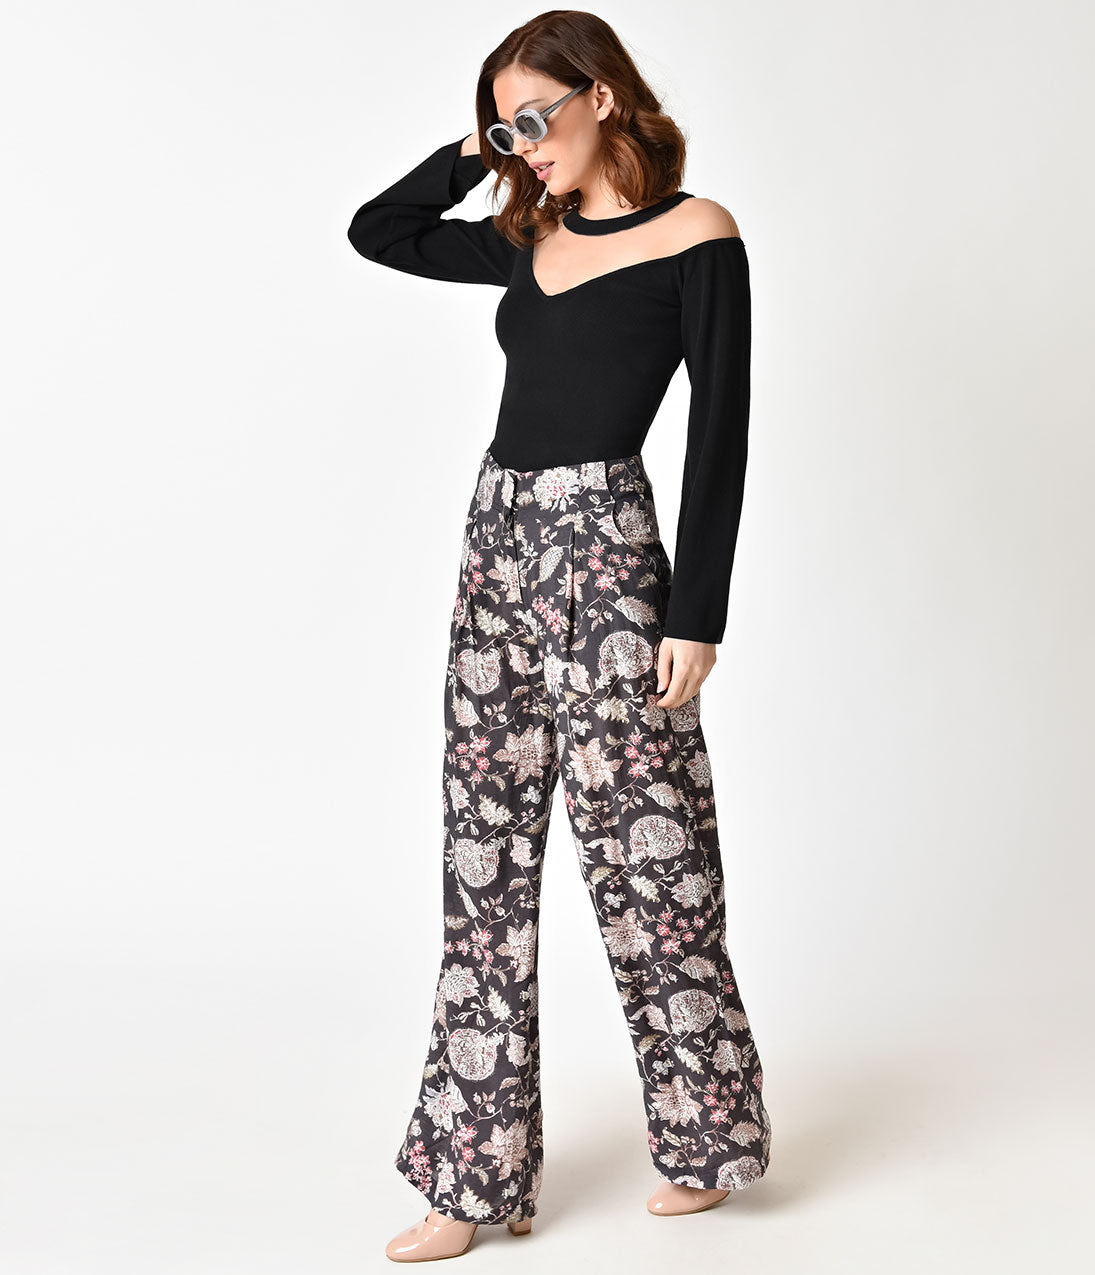 Vintage High Waisted Trousers, Sailor Pants, Jeans Retro Style Dark Brown  Floral Print Wide Leg Pants $43.00 AT vintagedancer.com